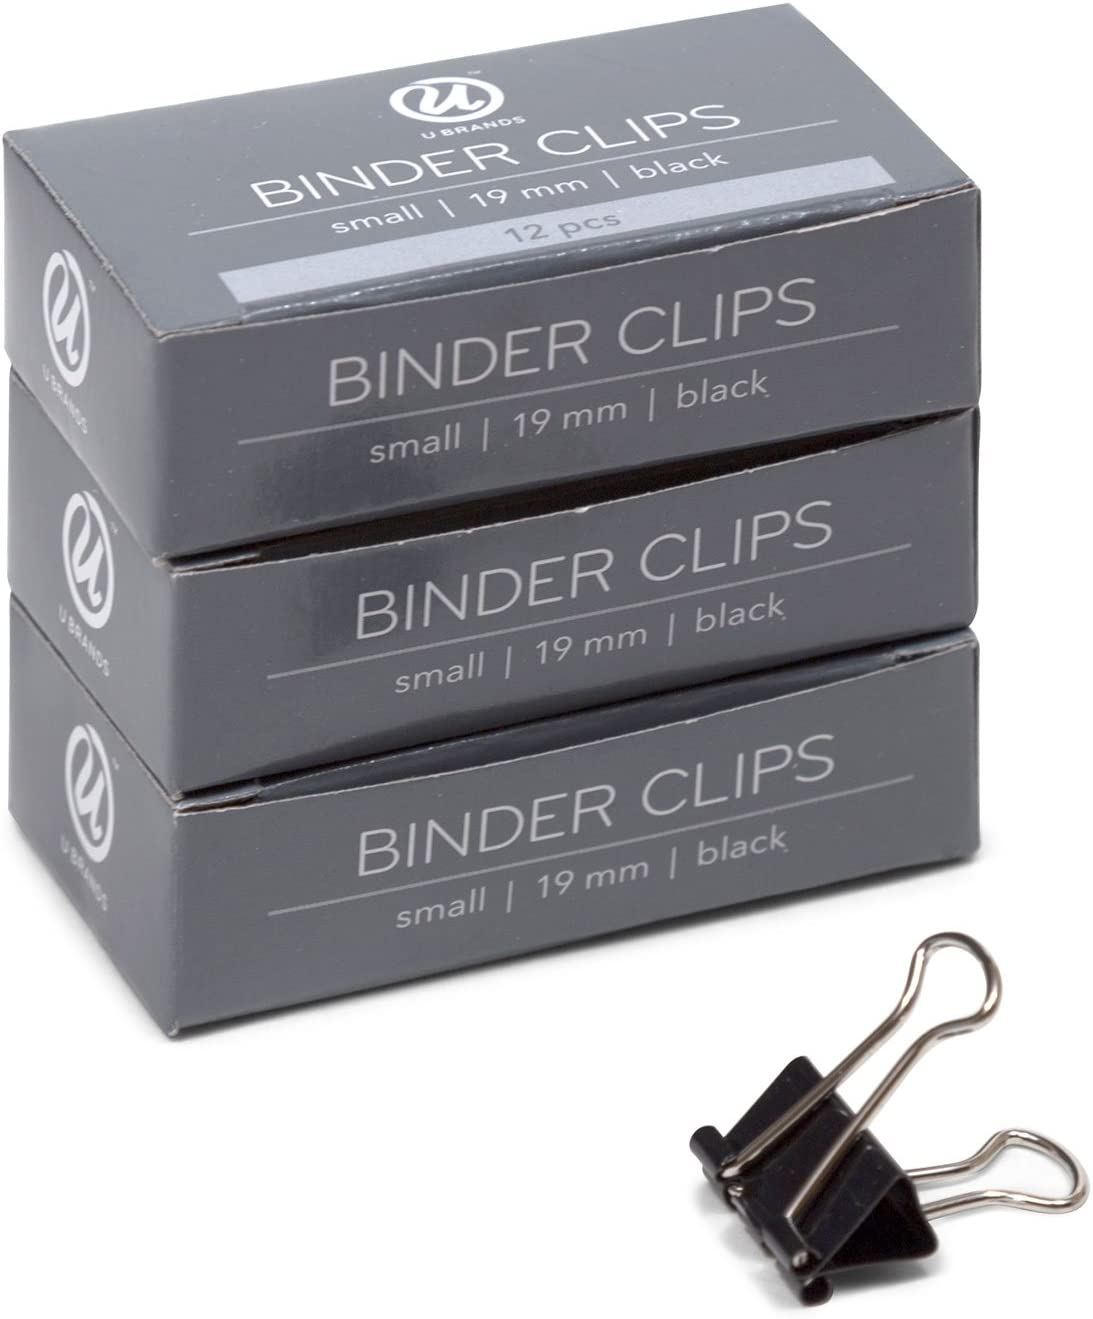 U Brands Binder Clips, Small 3/4-Inch Width, 1/3-Inch Paper Holding Capacity, Black and Silver Steel, 36-Count (652U08-24)